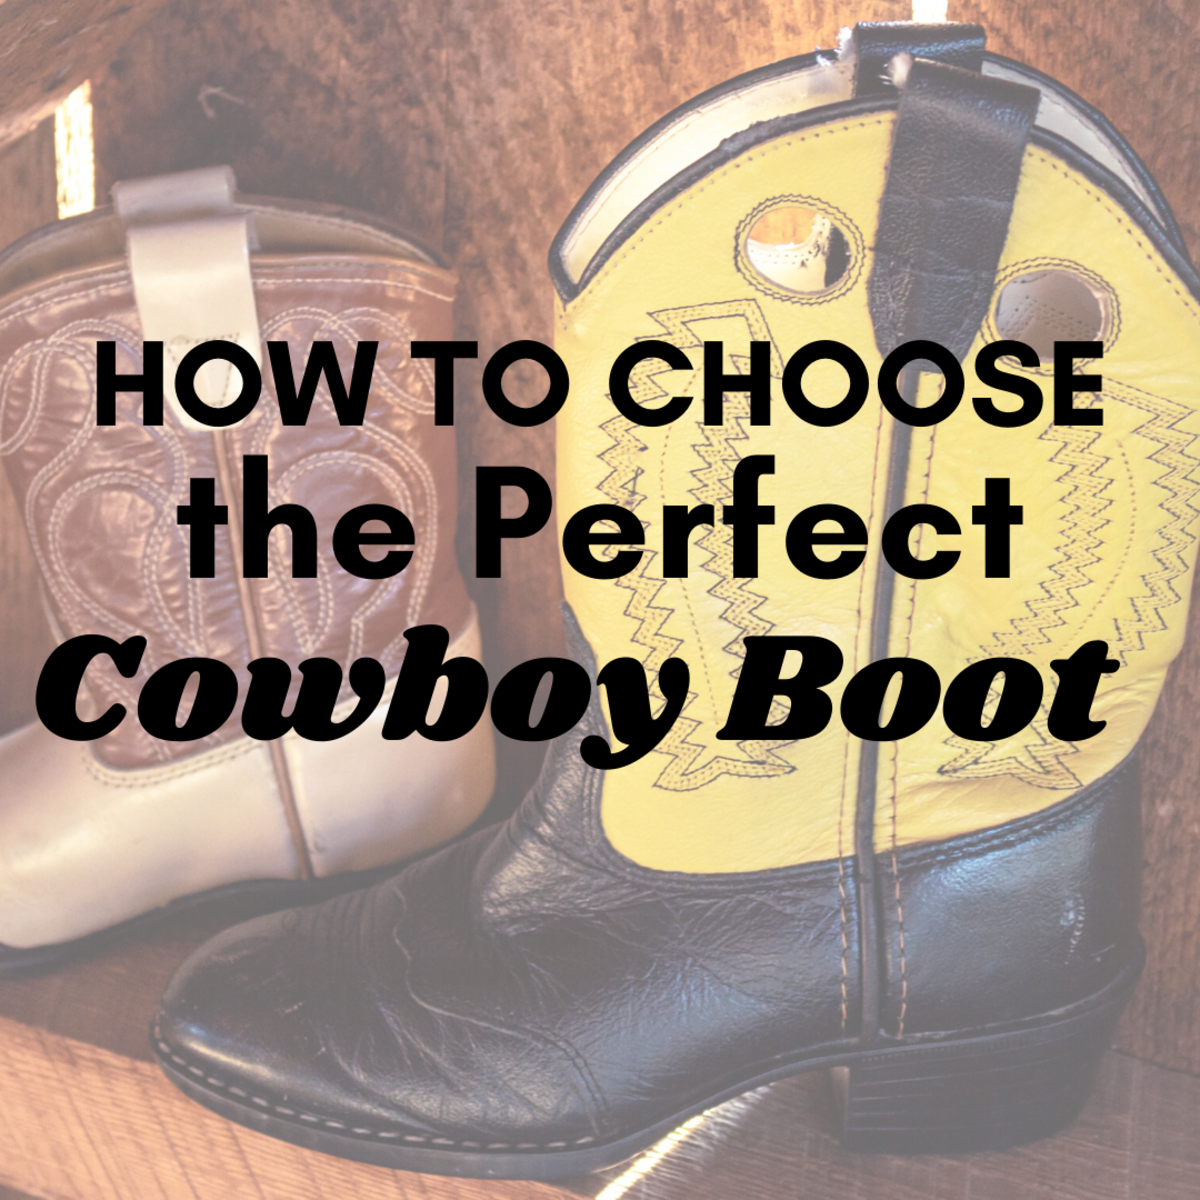 How to Choose a Good Western Cowboy Boot